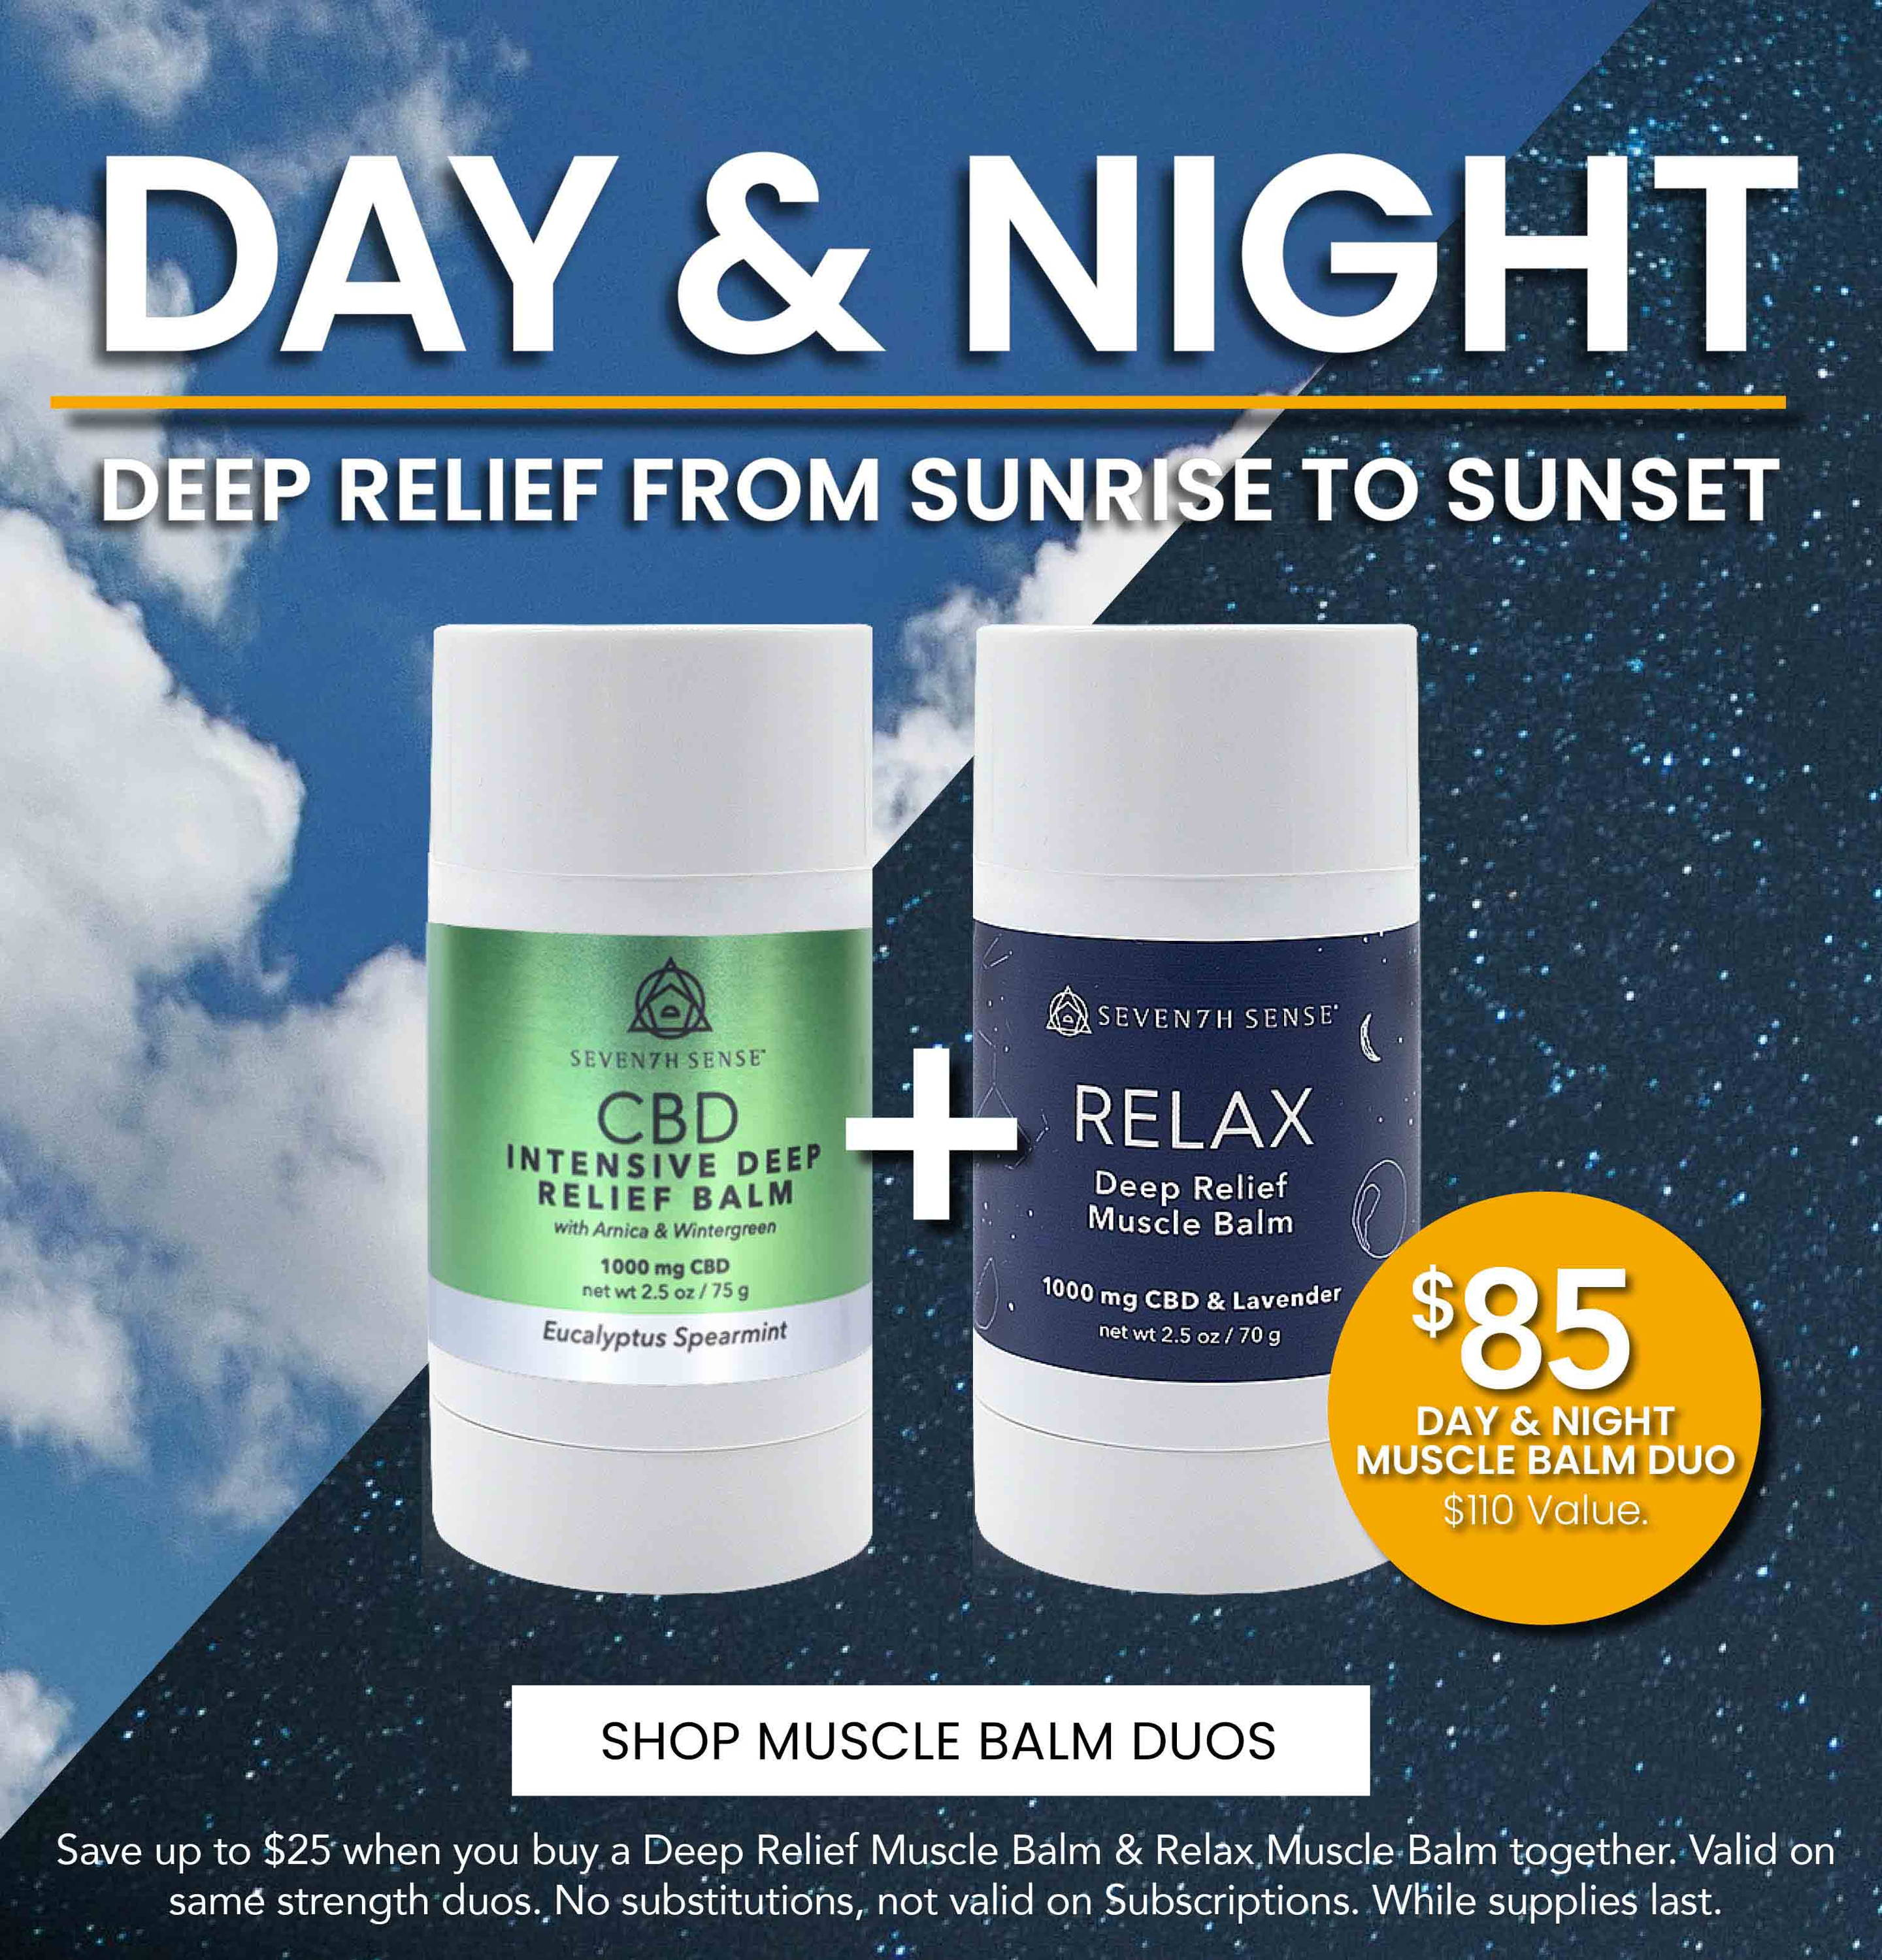 Save up to $25 when you buy a Deep Relief Muscle Balm & Relax Muscle Balm together. Valid on same strength duos. No Substitutions, not valid on Subscriptions. While supplies last.